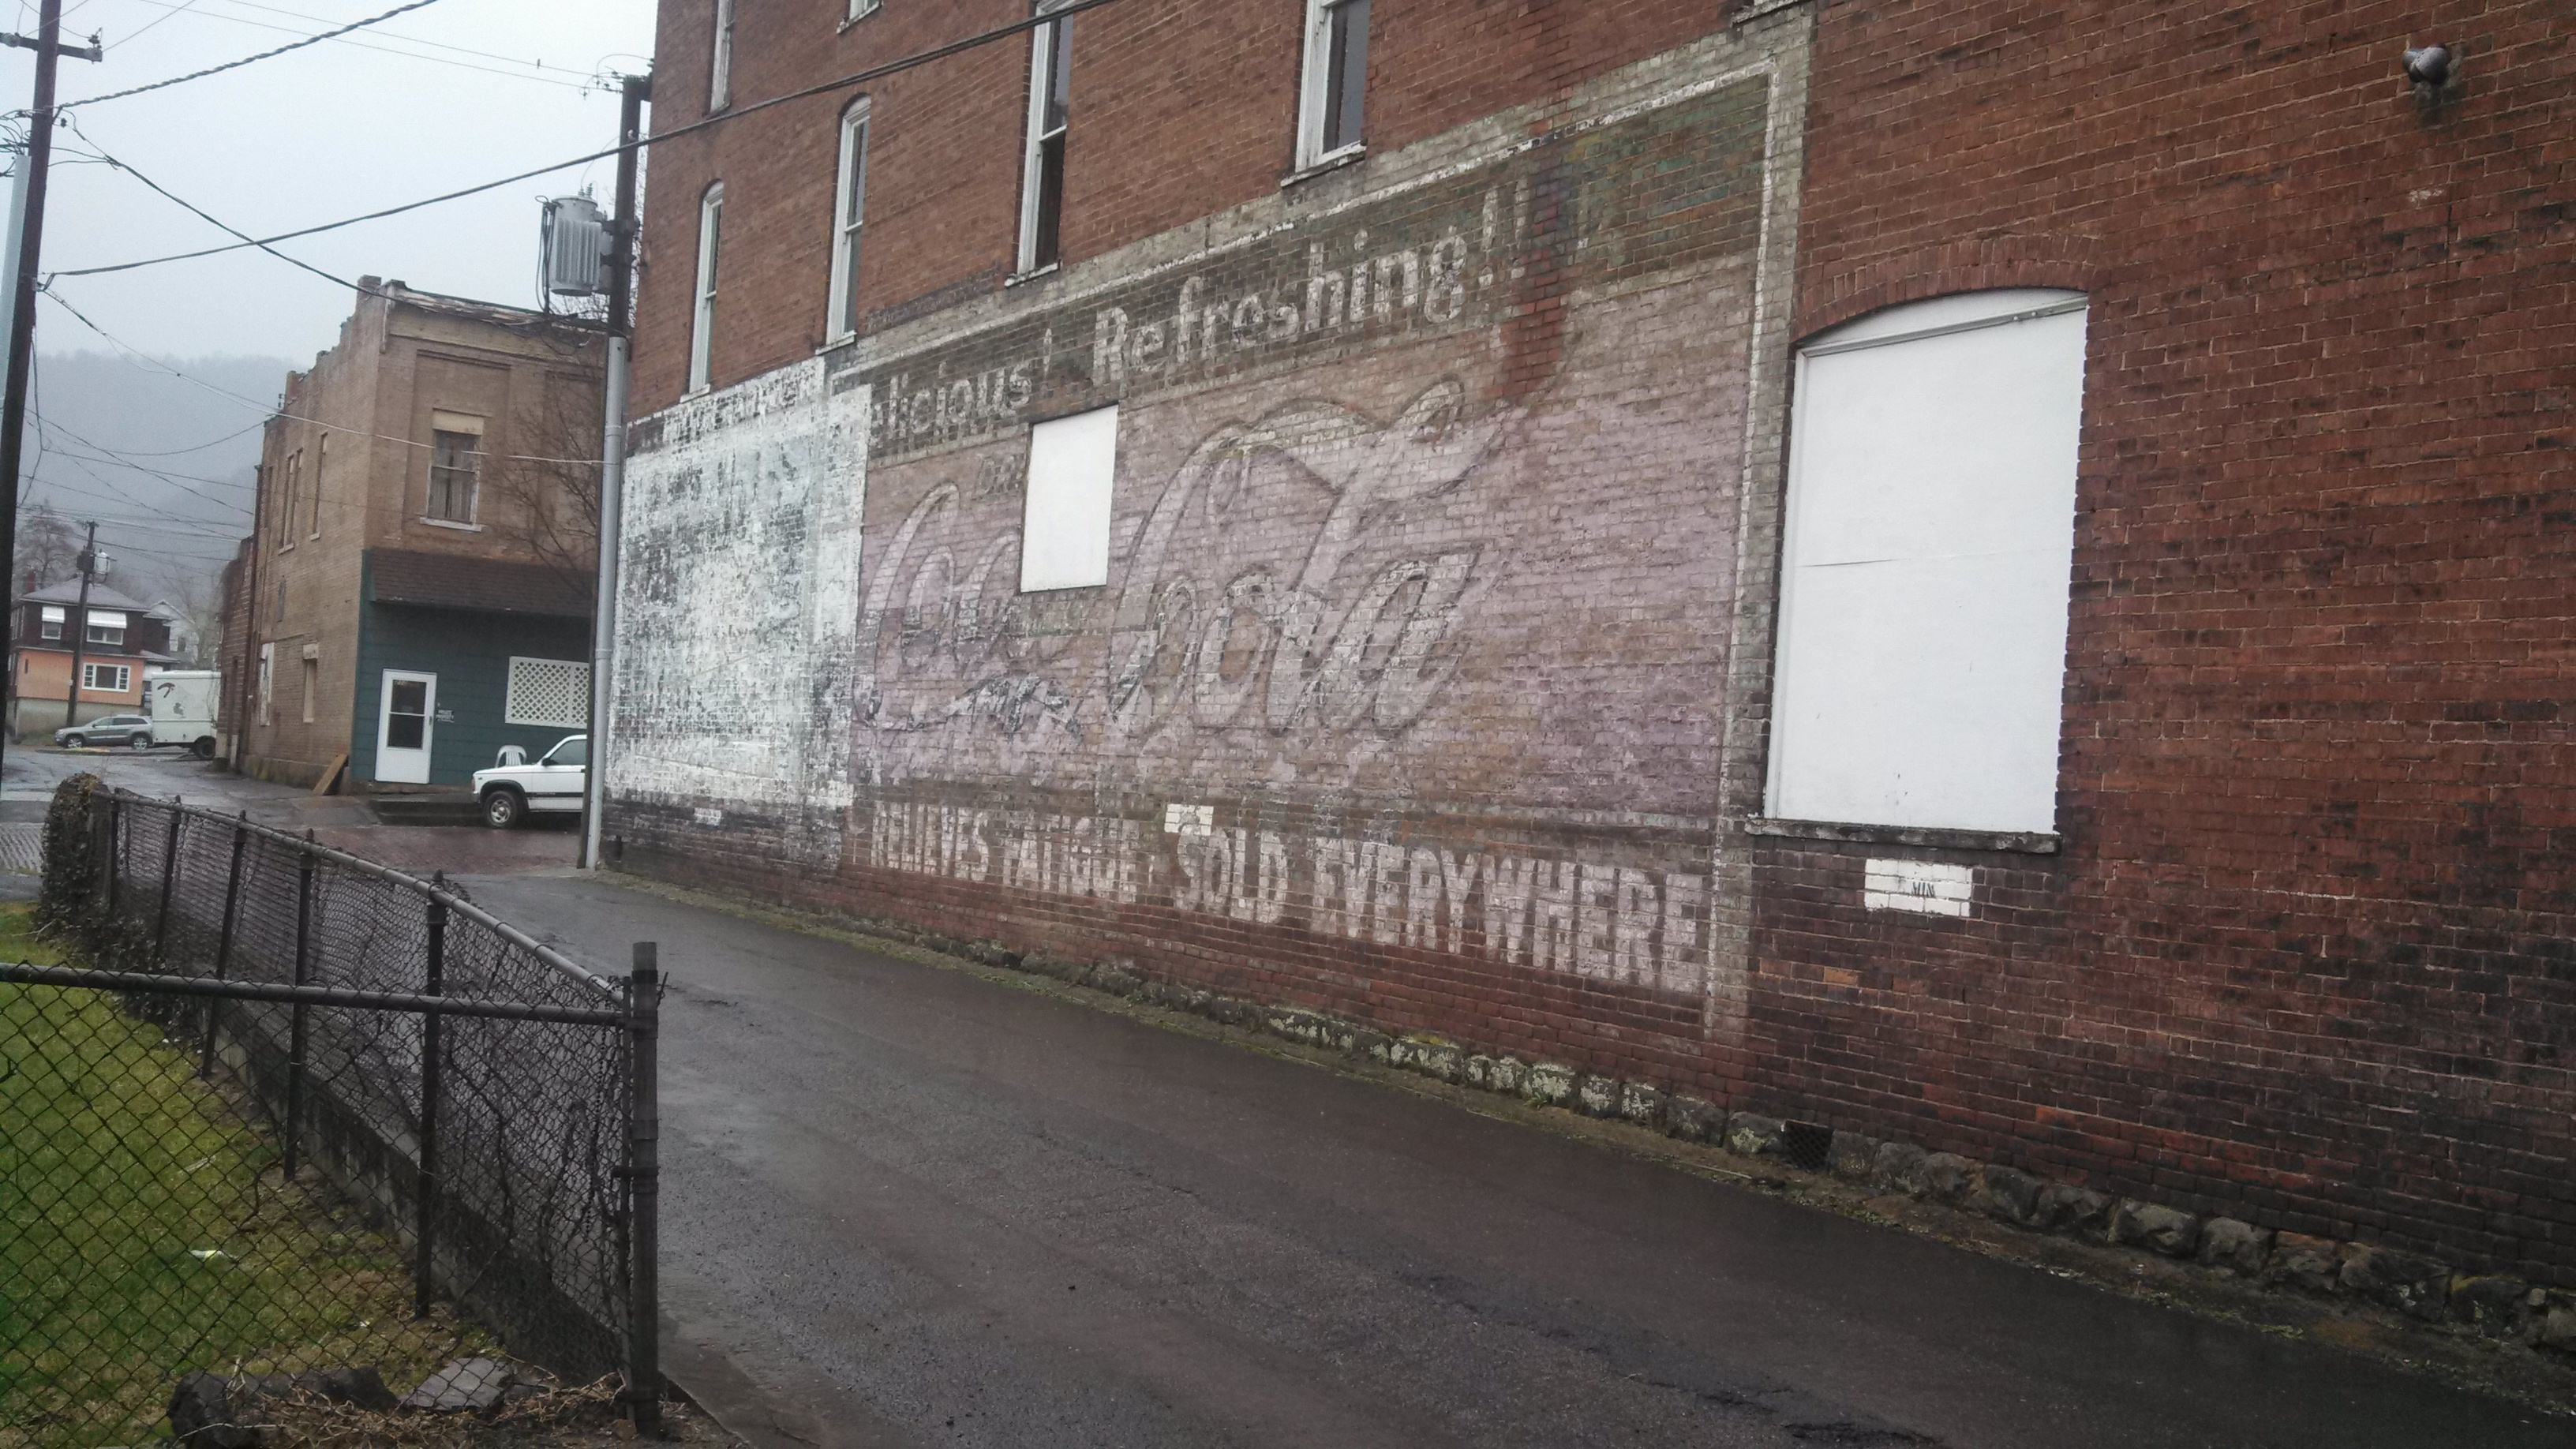 Ghost sign in Hinton, WV